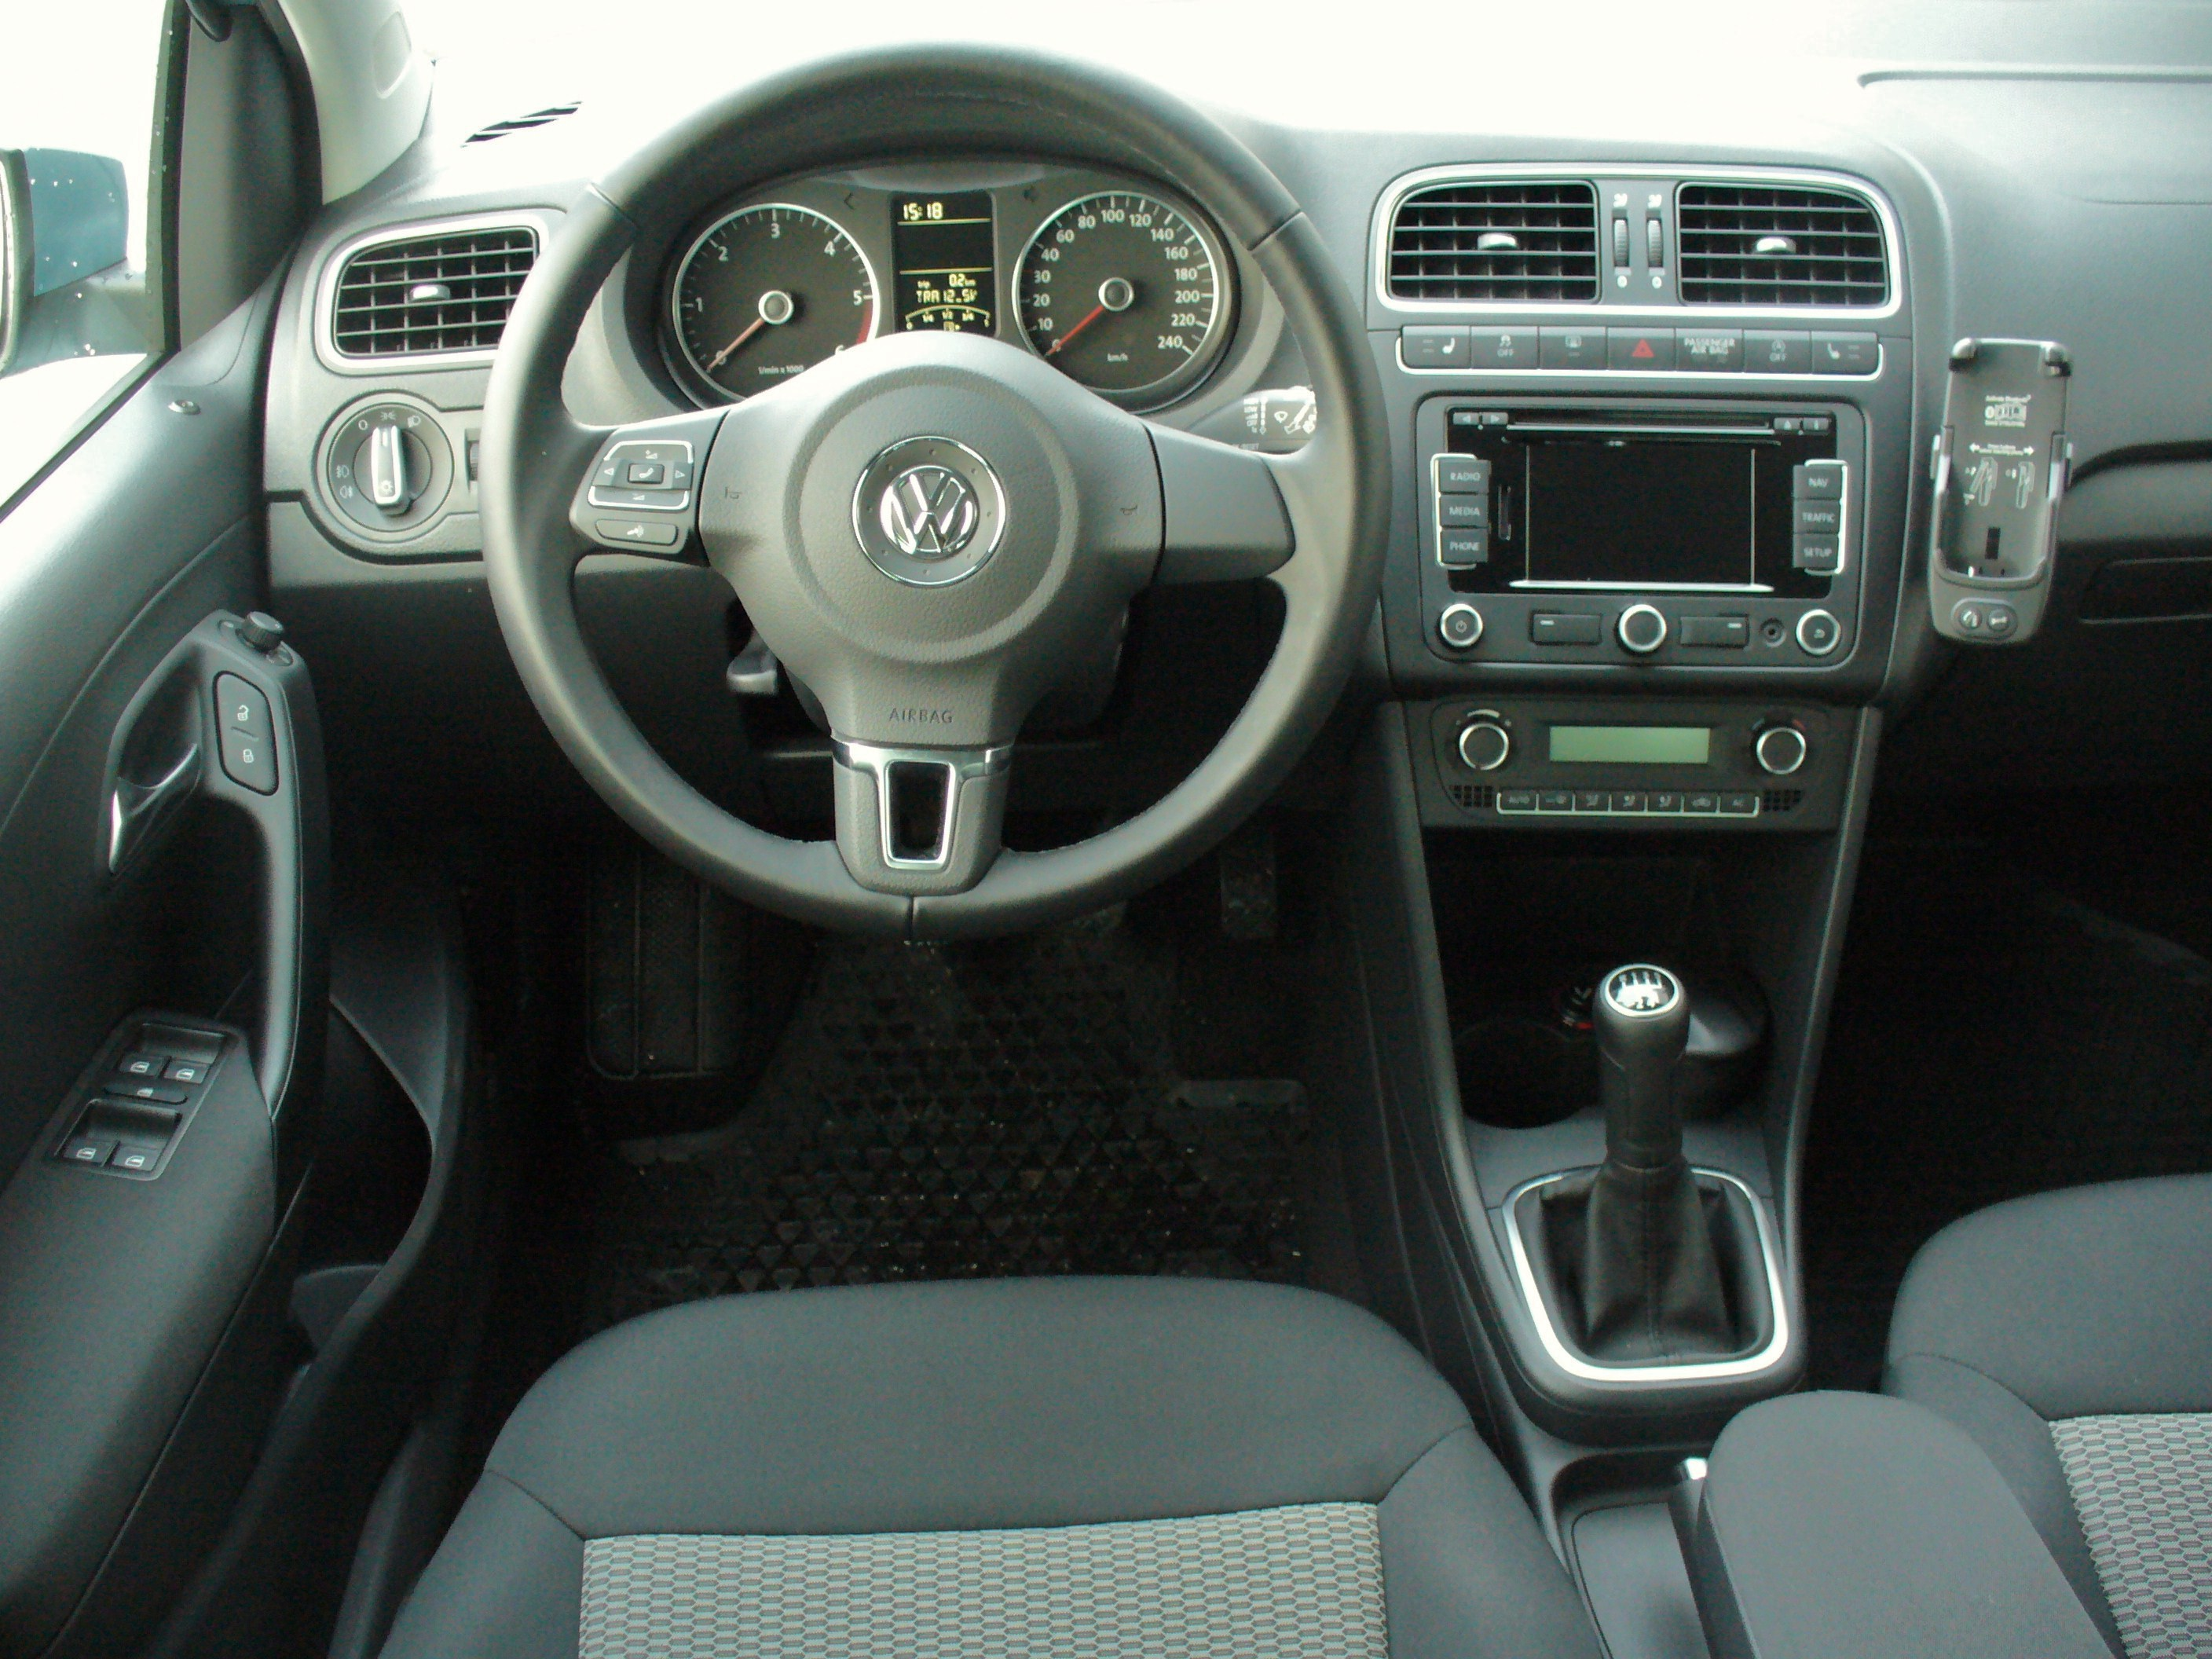 file vw polo v 1 2 tdi bluemotion glacierblau interieur. Black Bedroom Furniture Sets. Home Design Ideas